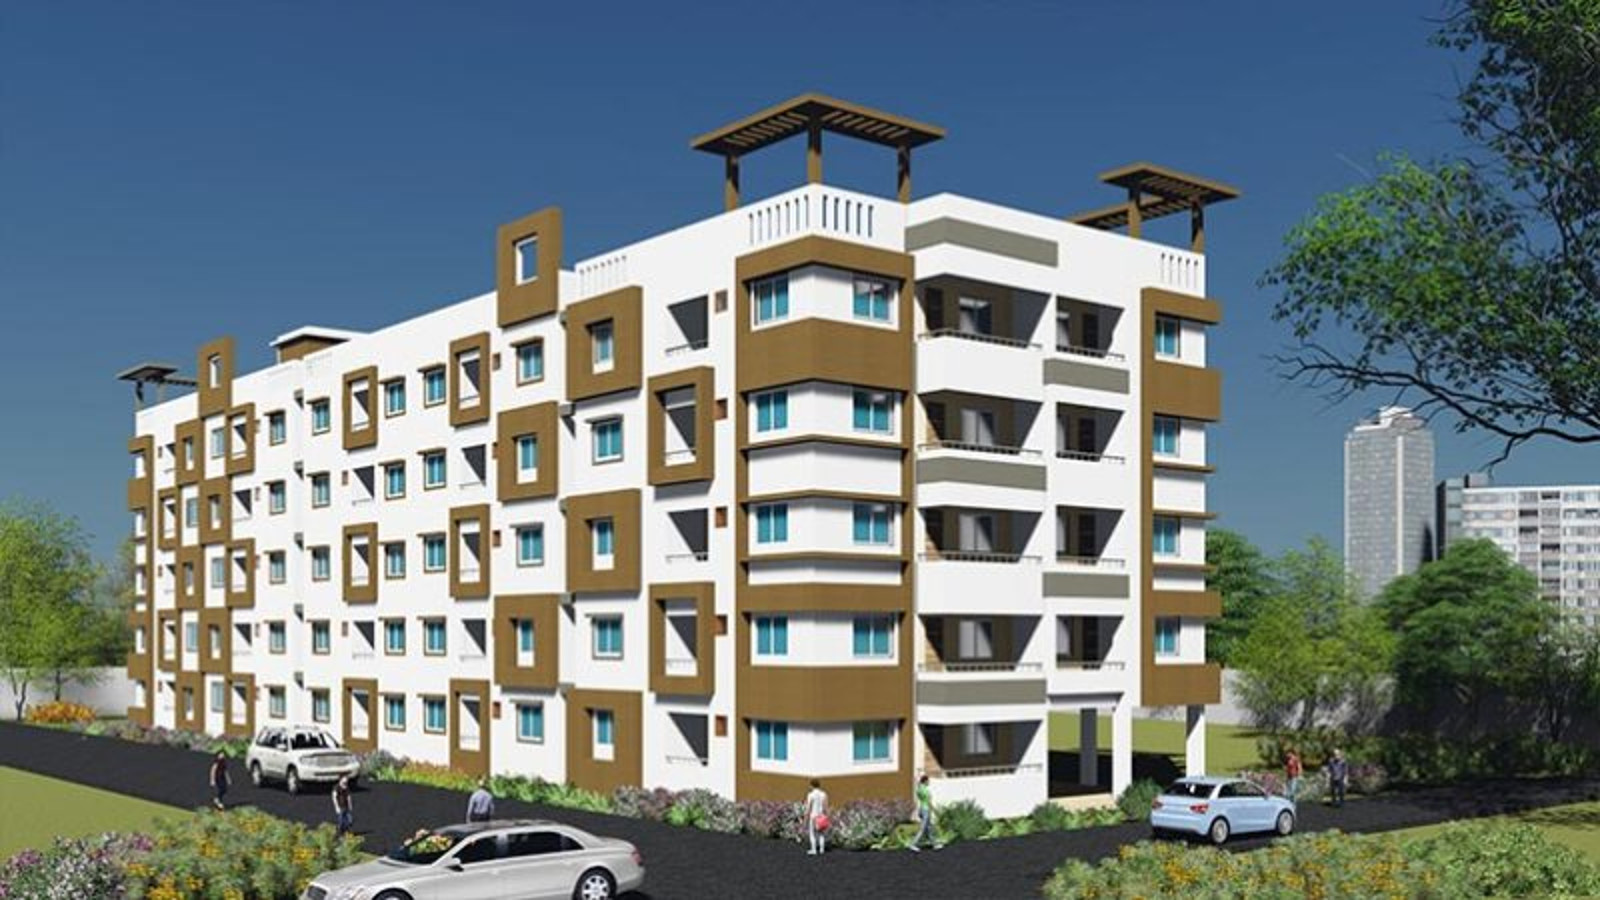 geetanjali-apartments-elevation-28813799